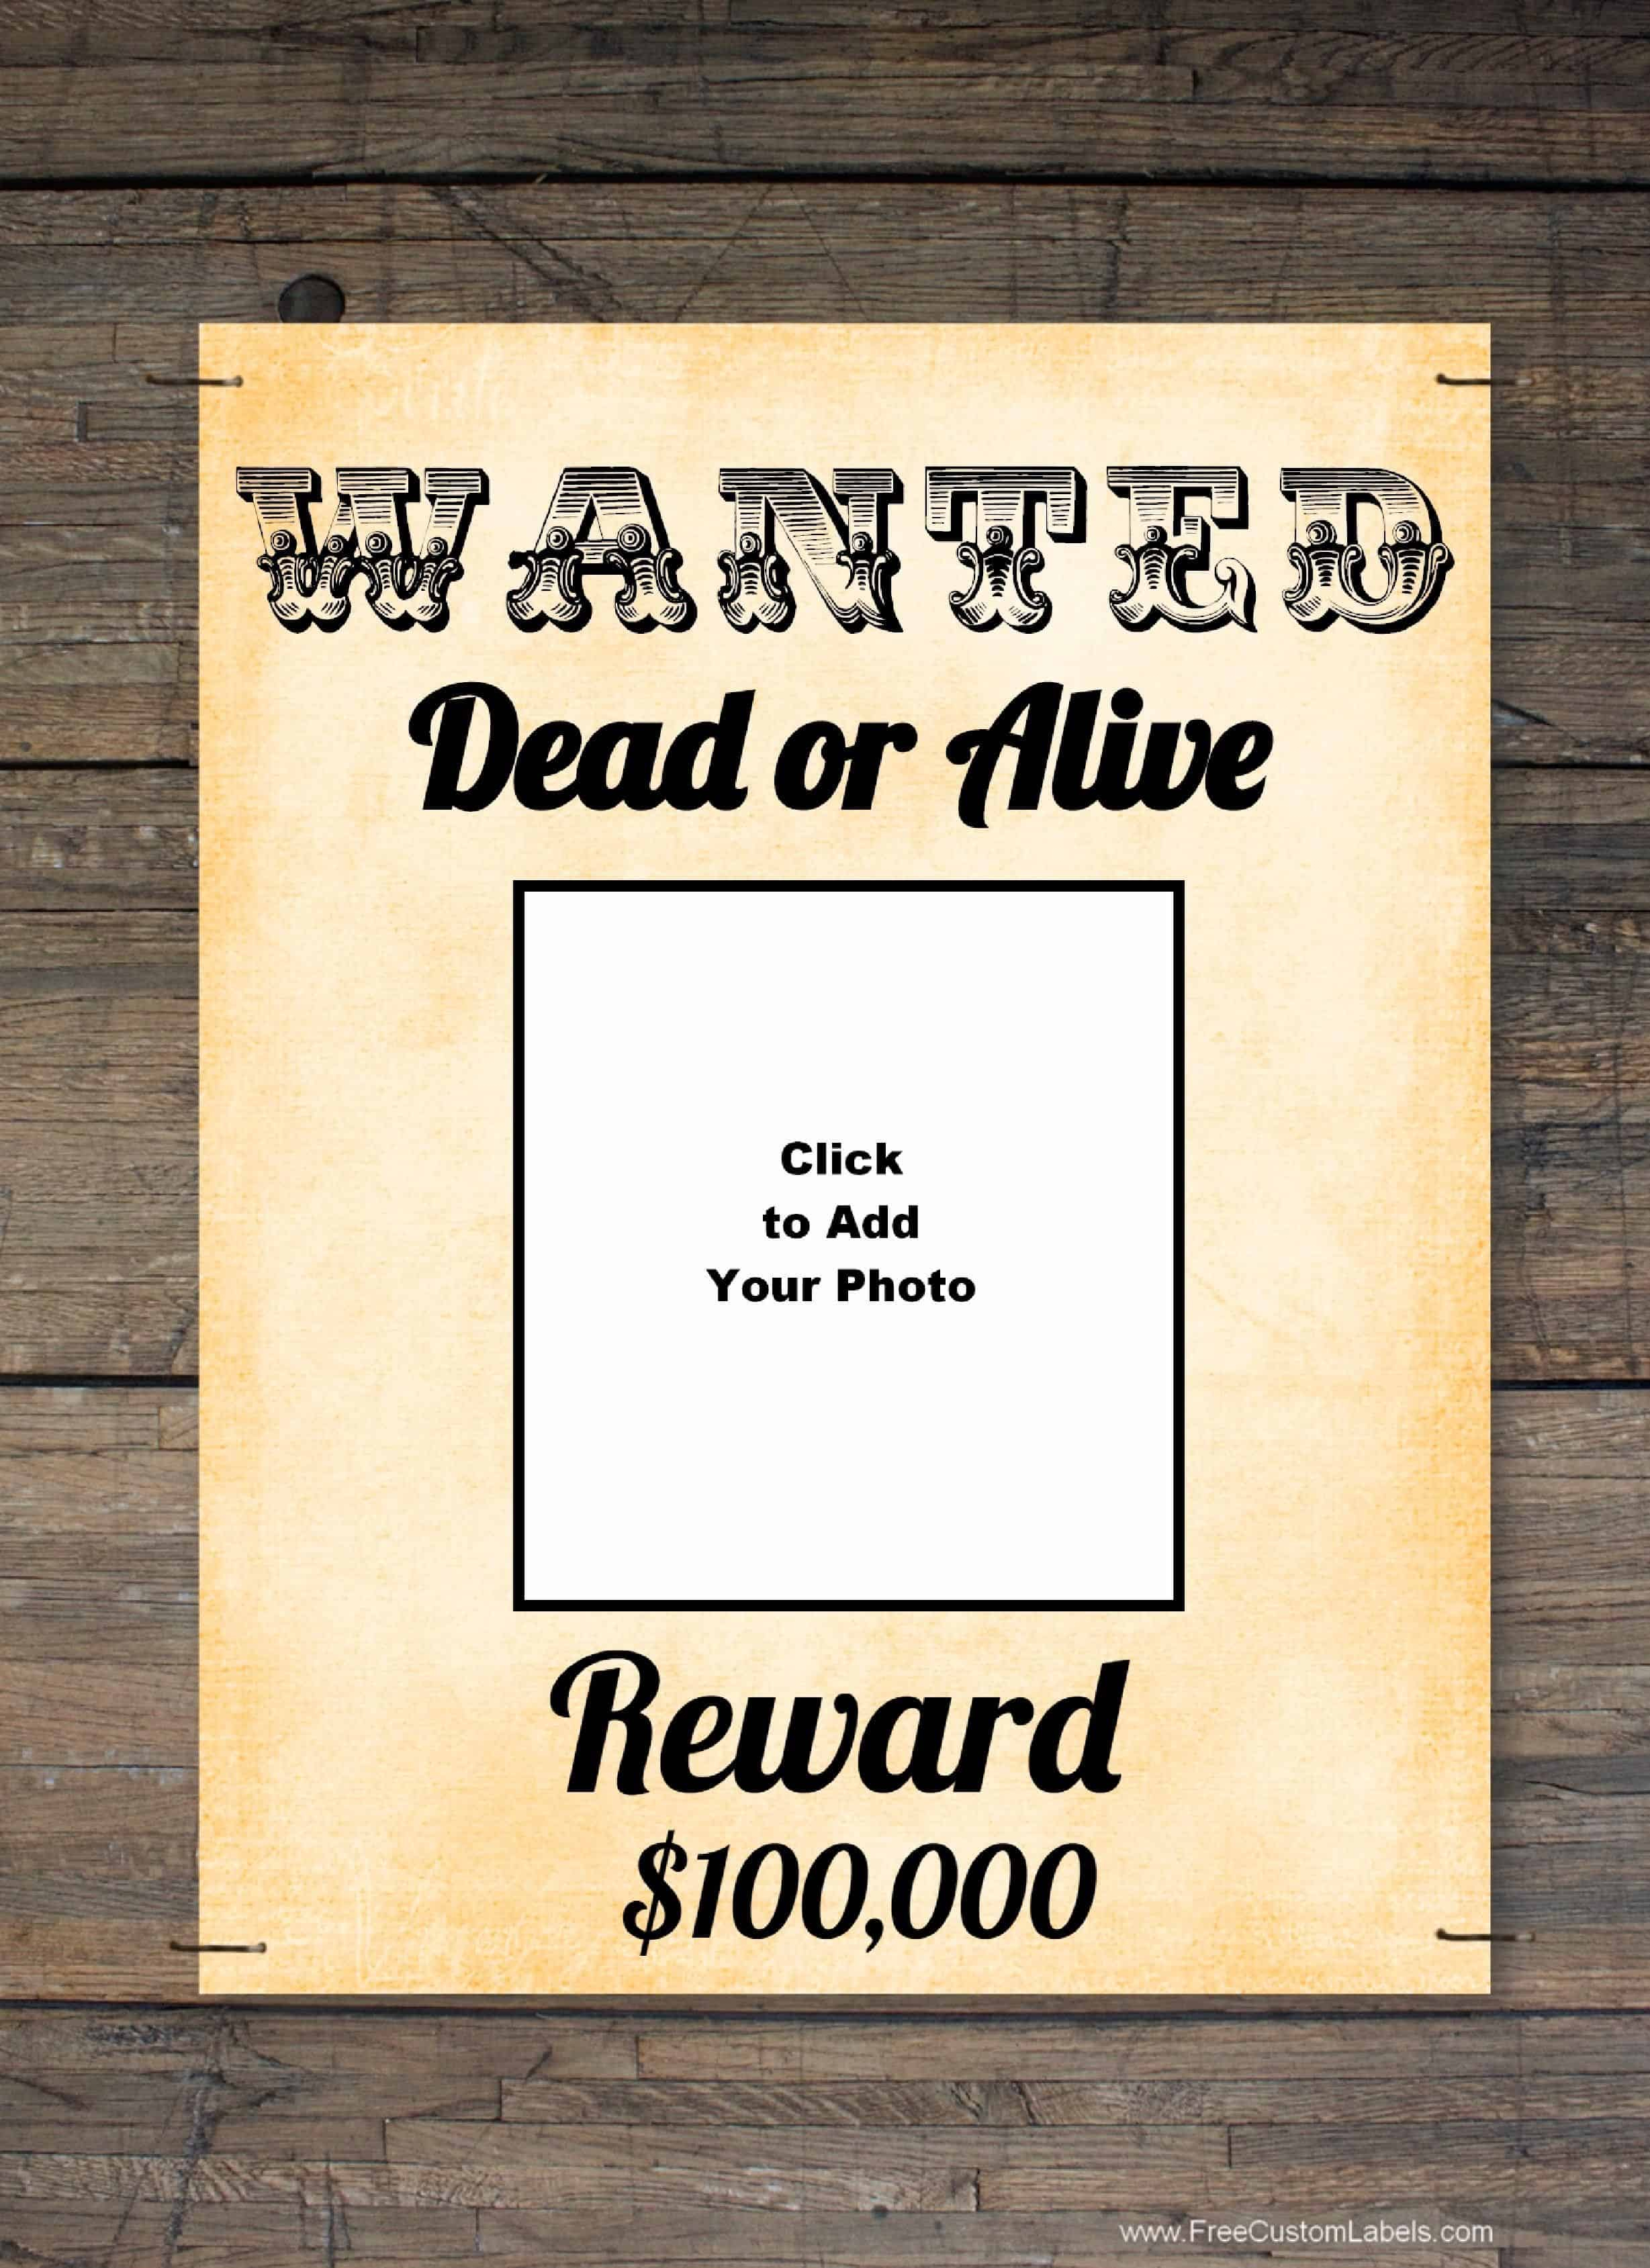 Free Wanted Poster Maker | Make A Free Printable Wanted Poster Online - Free Printable Poster Maker